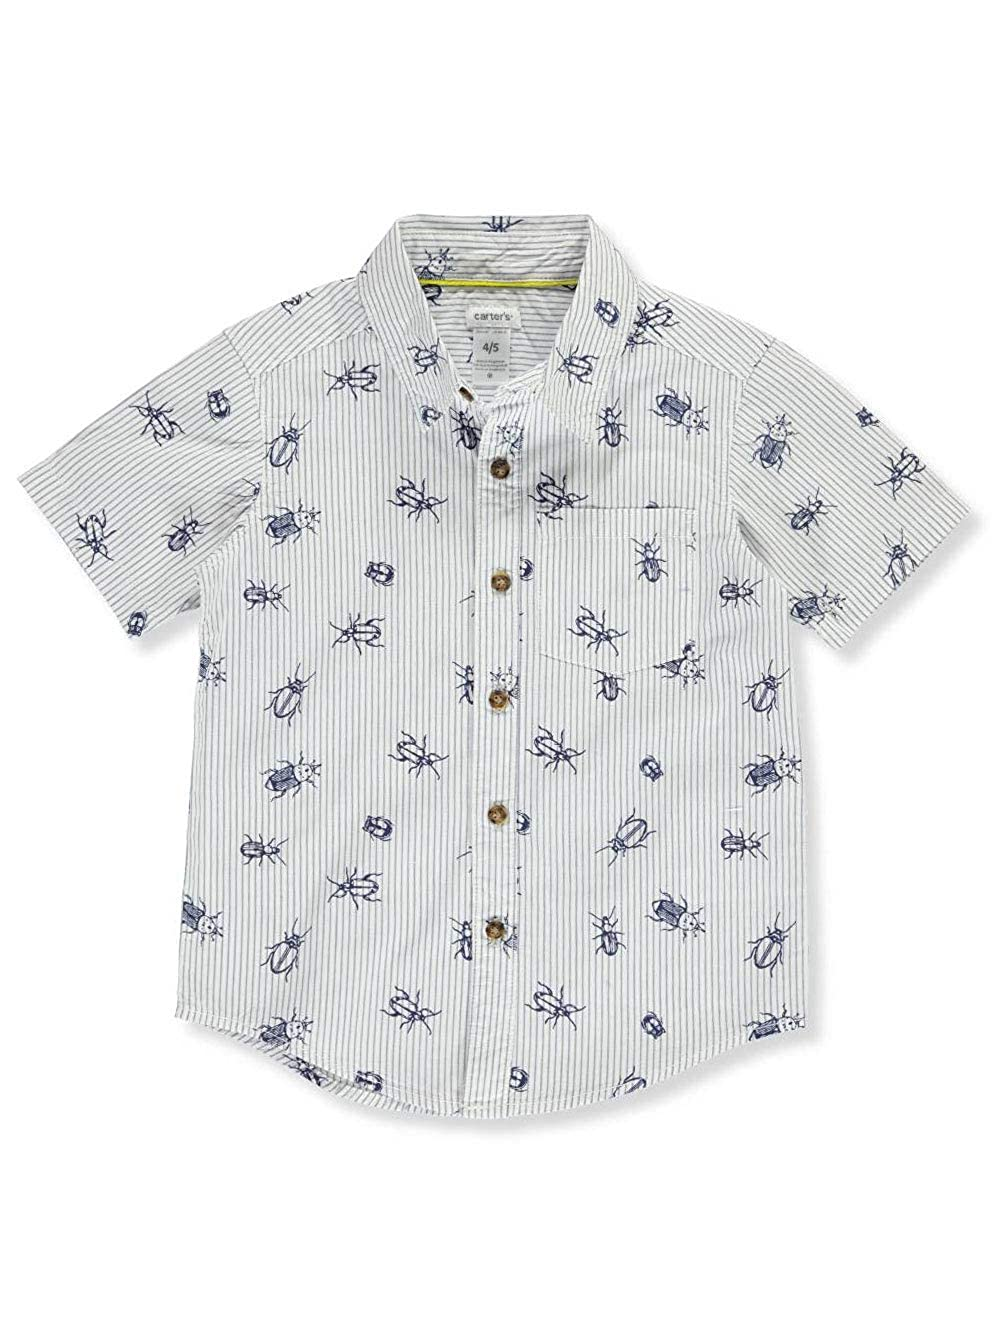 Carters Boys S//S Button-Down